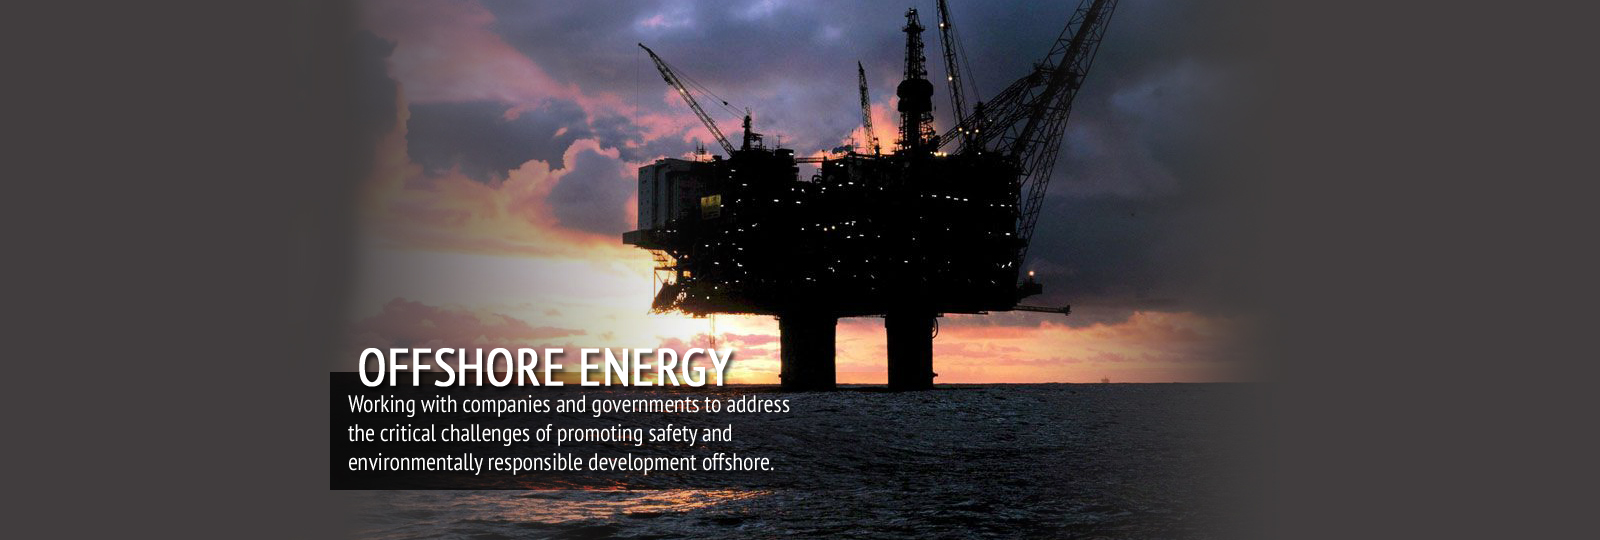 Slide 5 – Offshore Energy